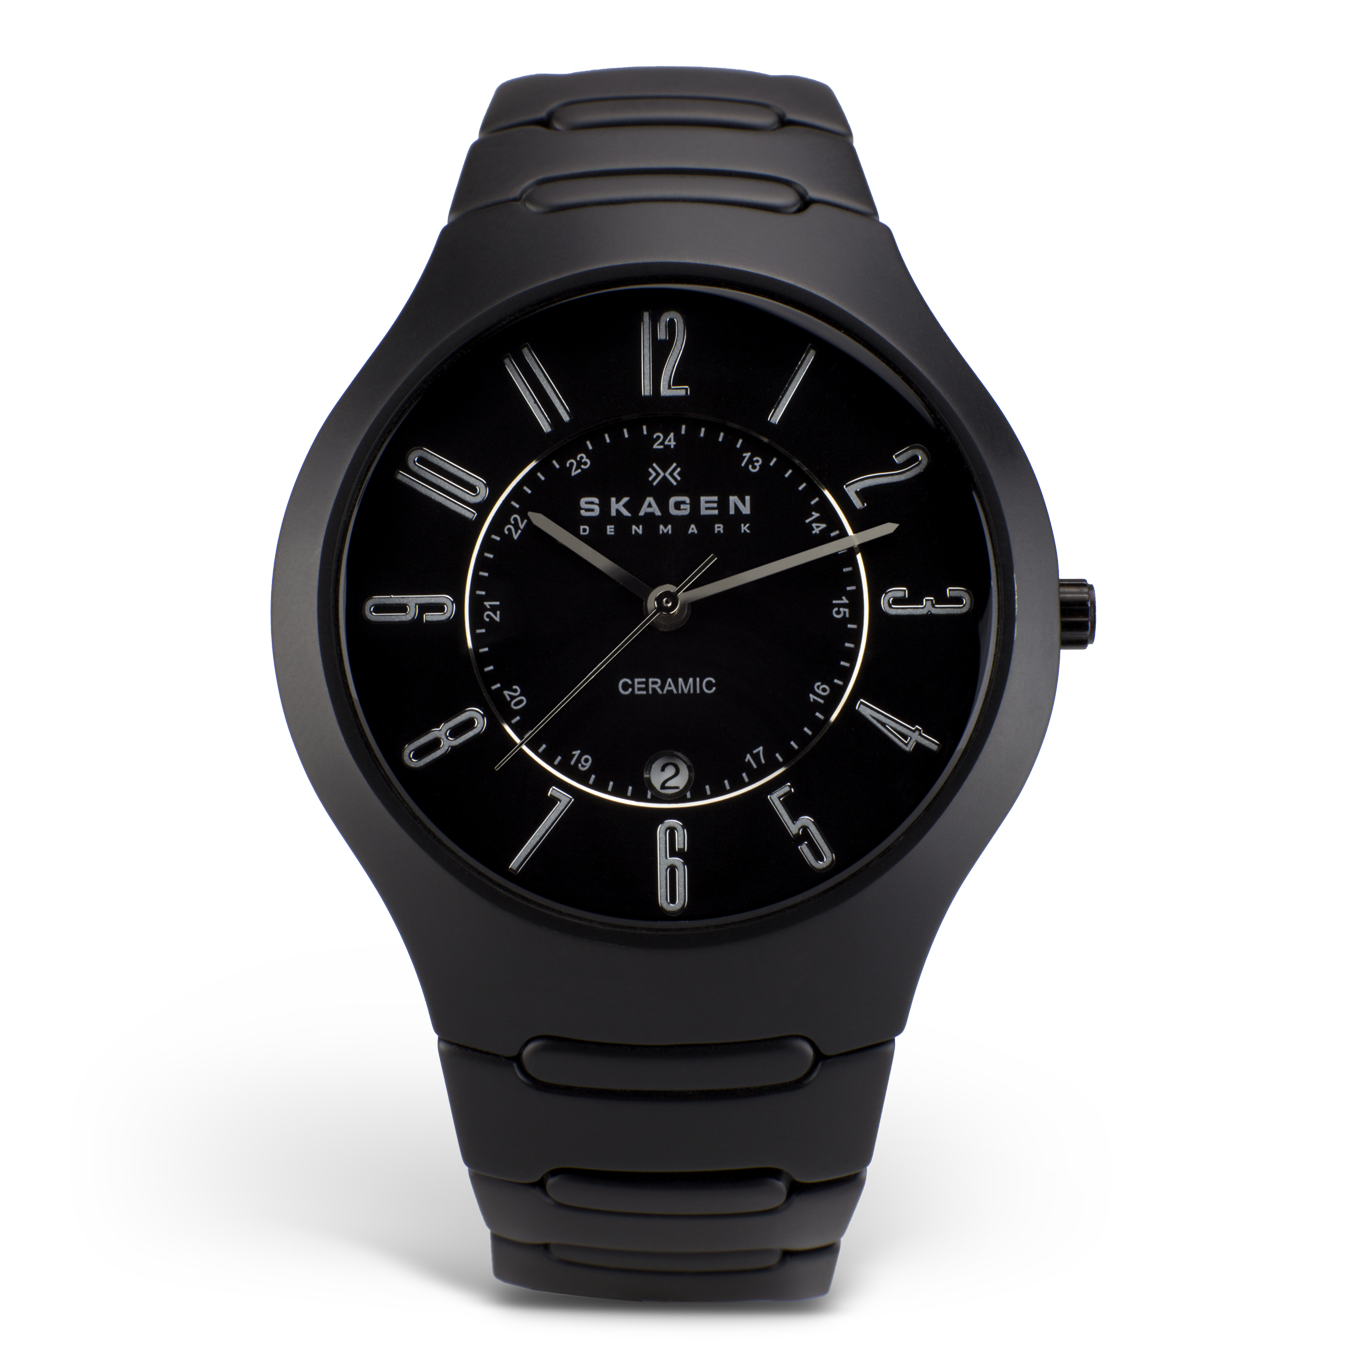 Skagen wristwatch